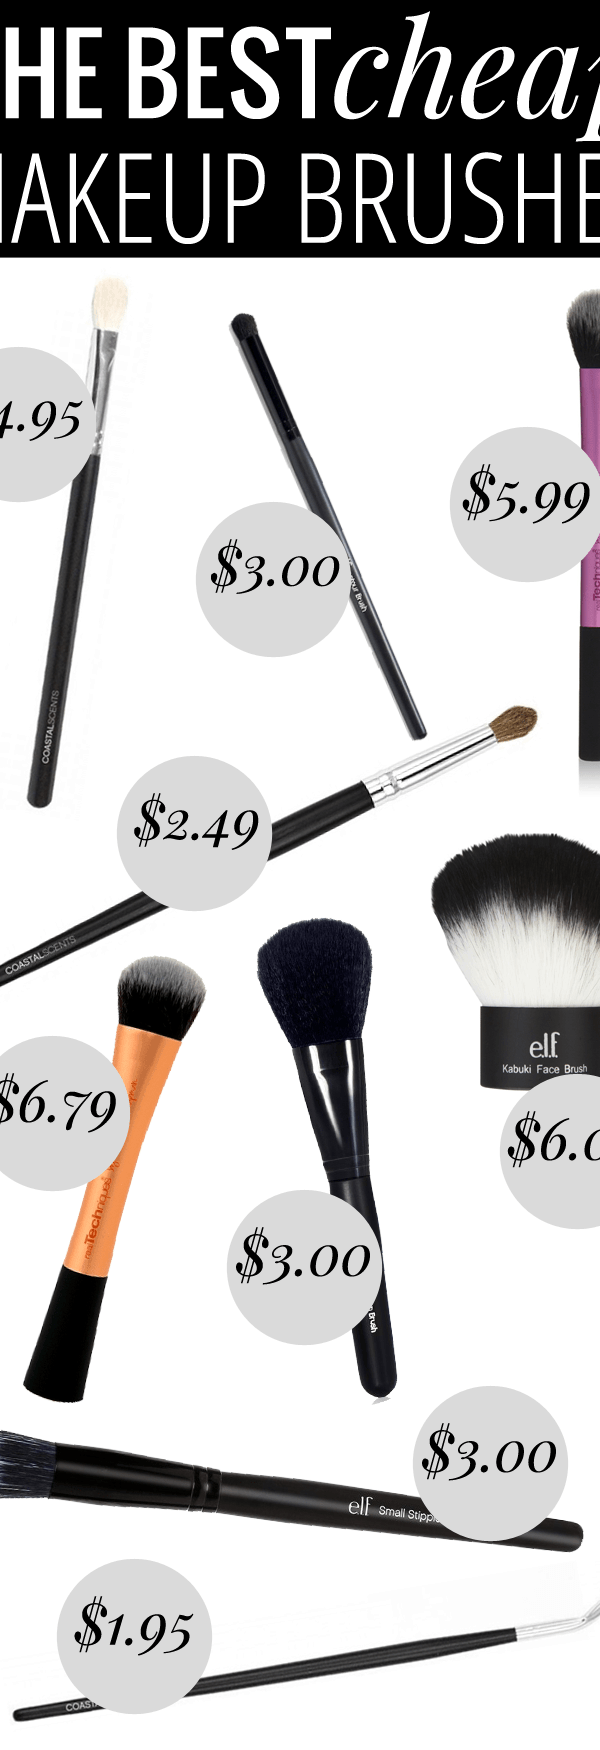 The Best Cheap Makeup Brushes by beauty blogger Meg O. on the Go